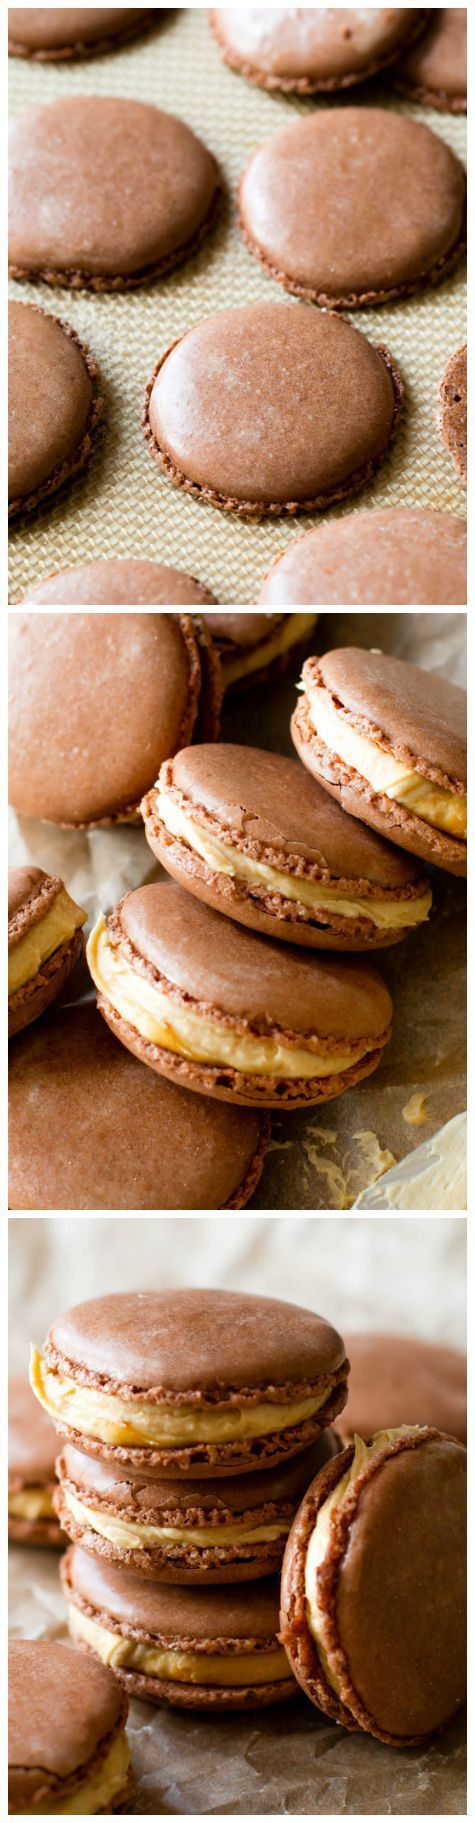 Ever wonder how to make them? Here's your guide to making French macarons in a chocolate peanut butter flavor! @sallysbakeblog